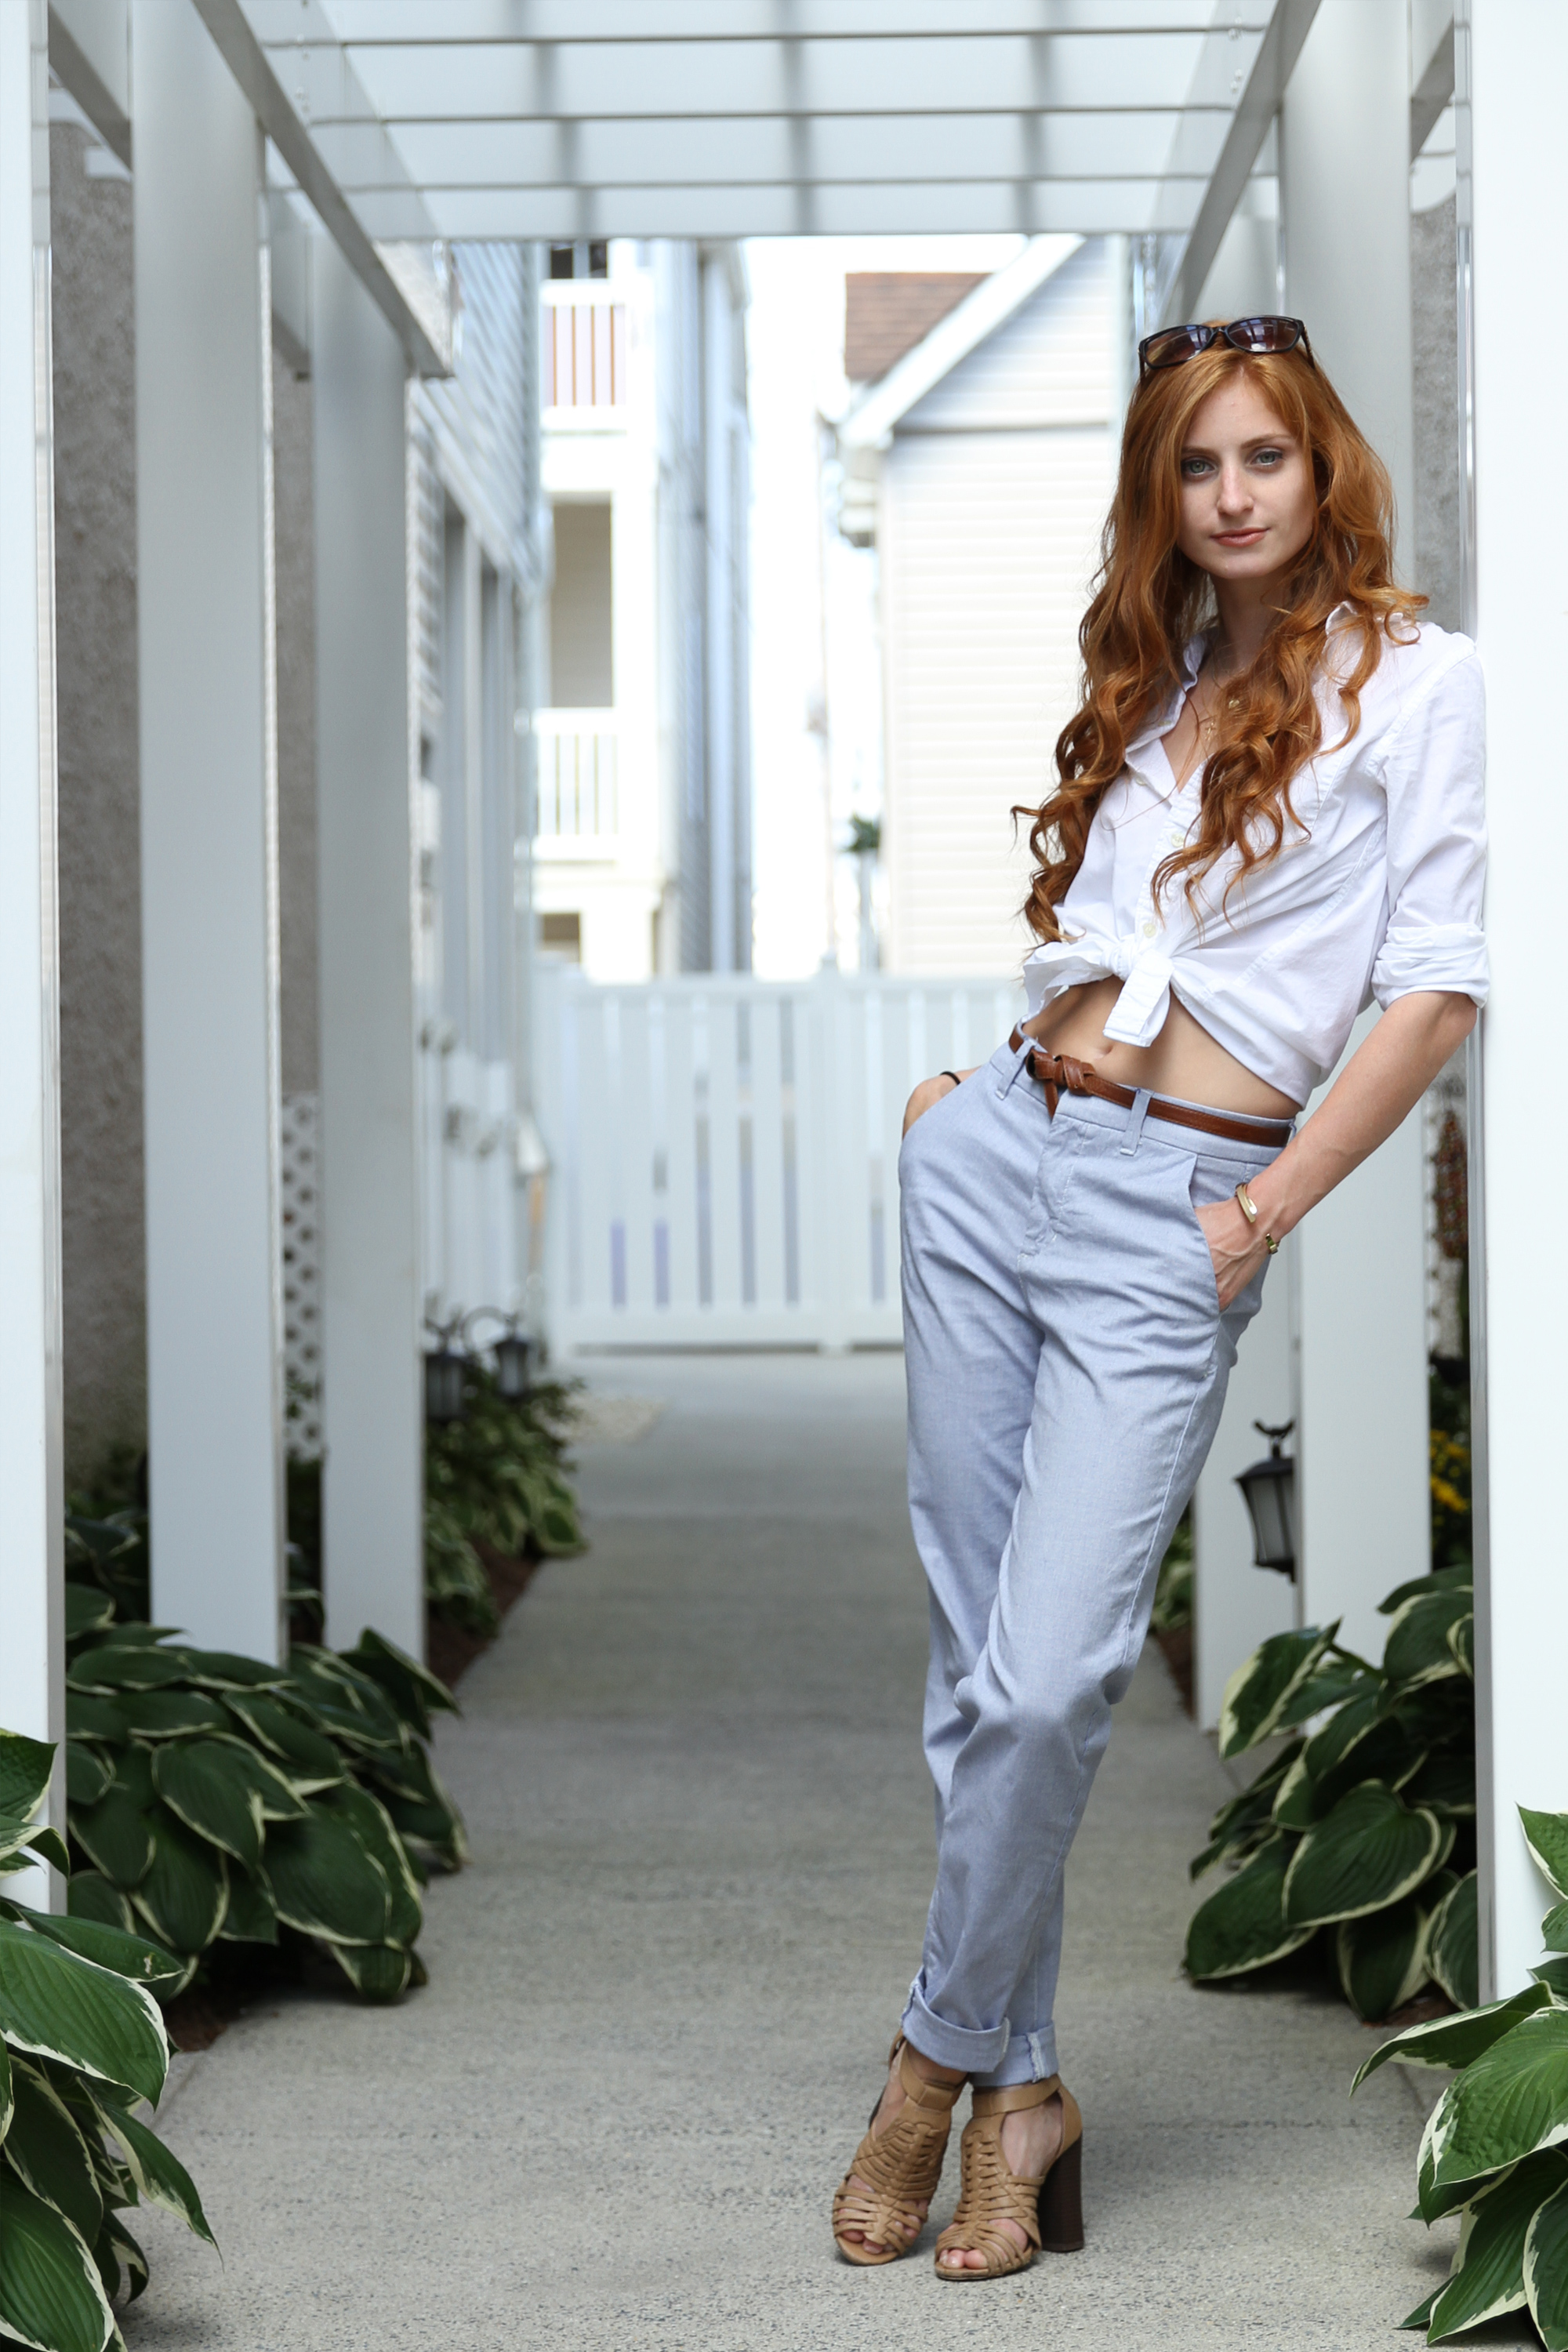 Redhead girl leaning with white shirt and blue pants